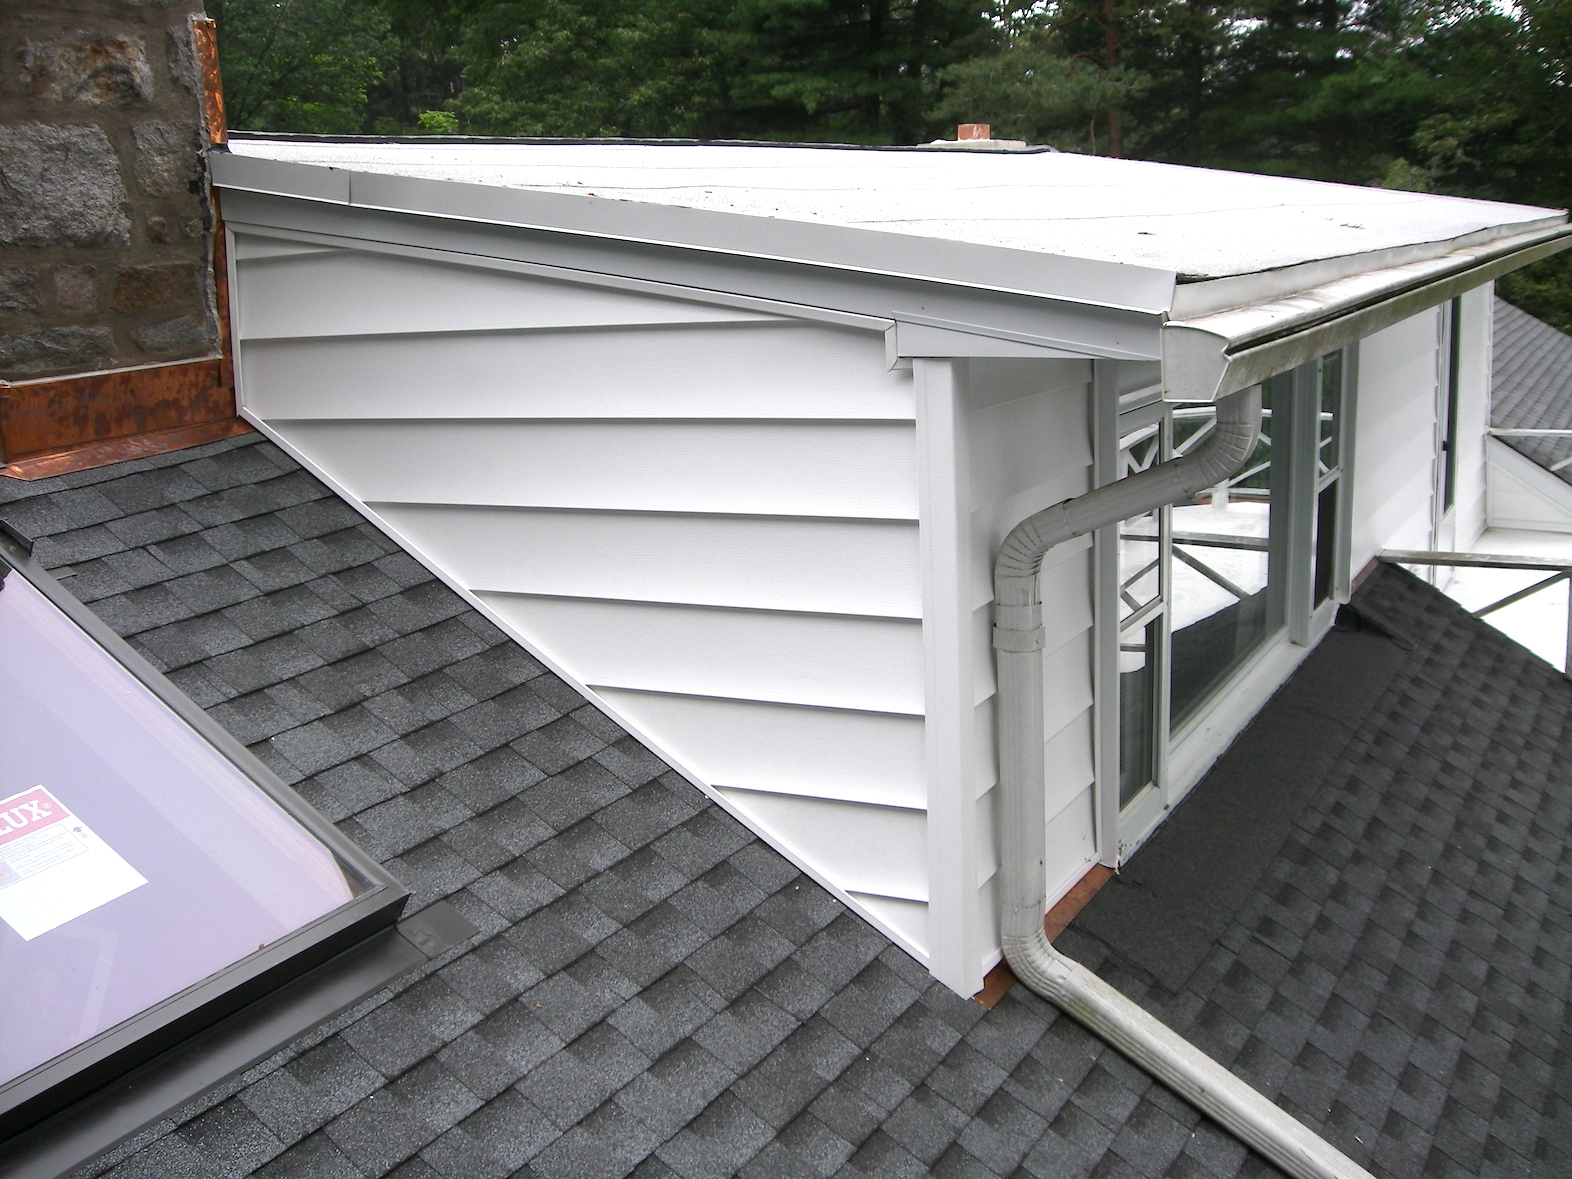 Siding Residential and Commercial Services Russell Roofing And Exteriors